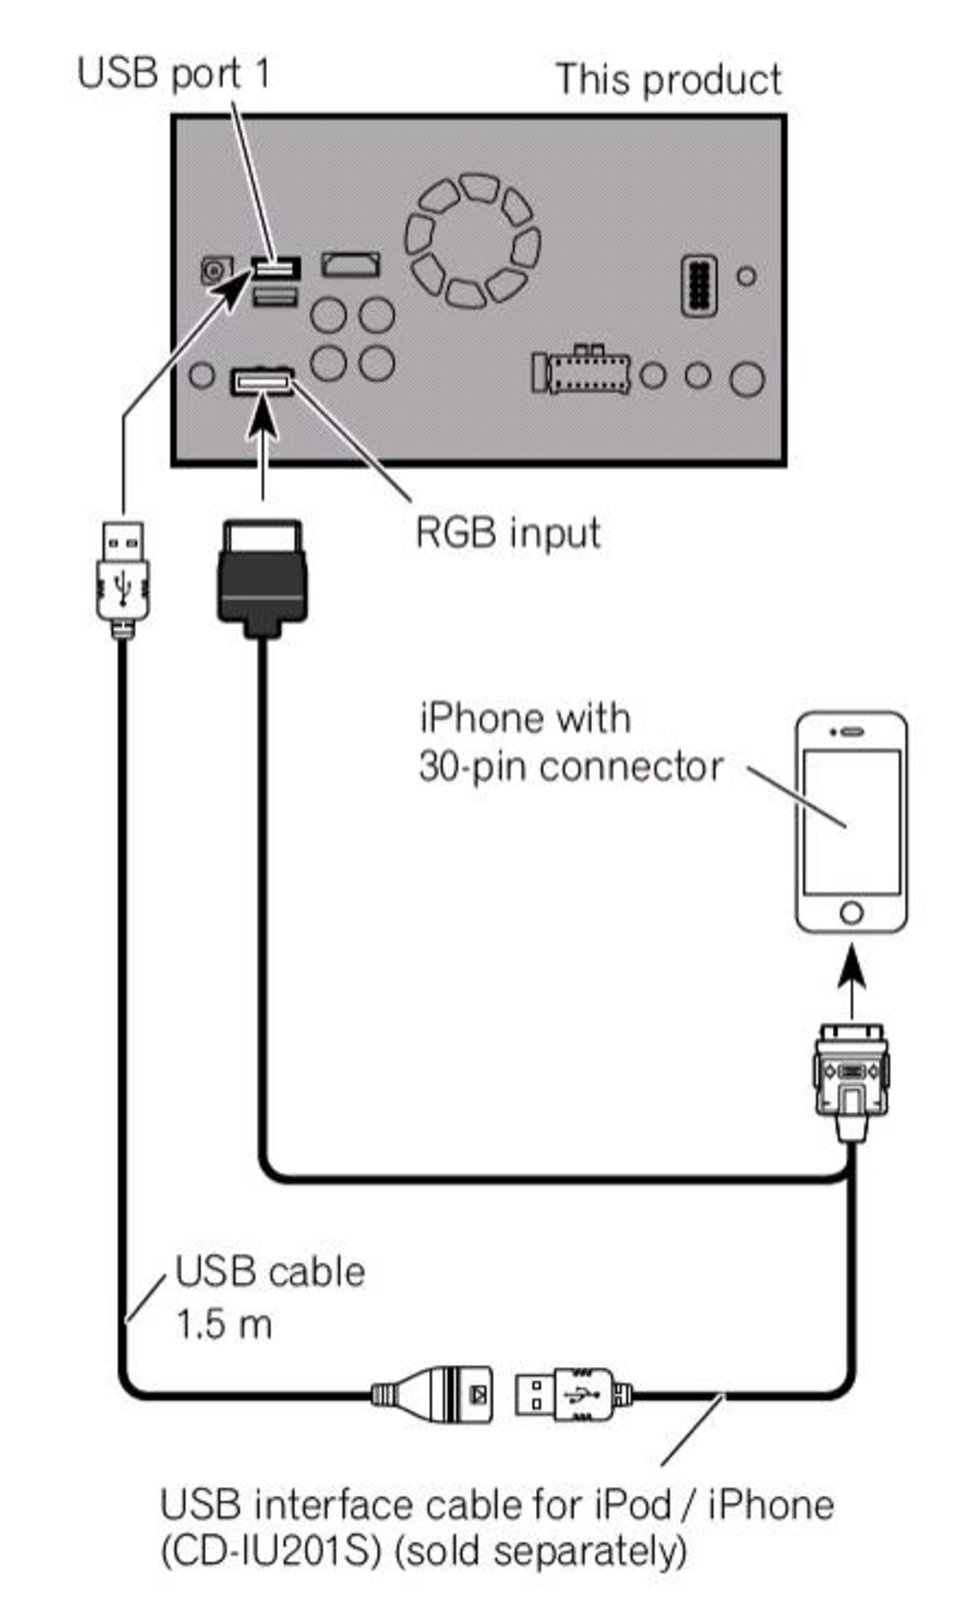 IPhone 4/4S Connectivity